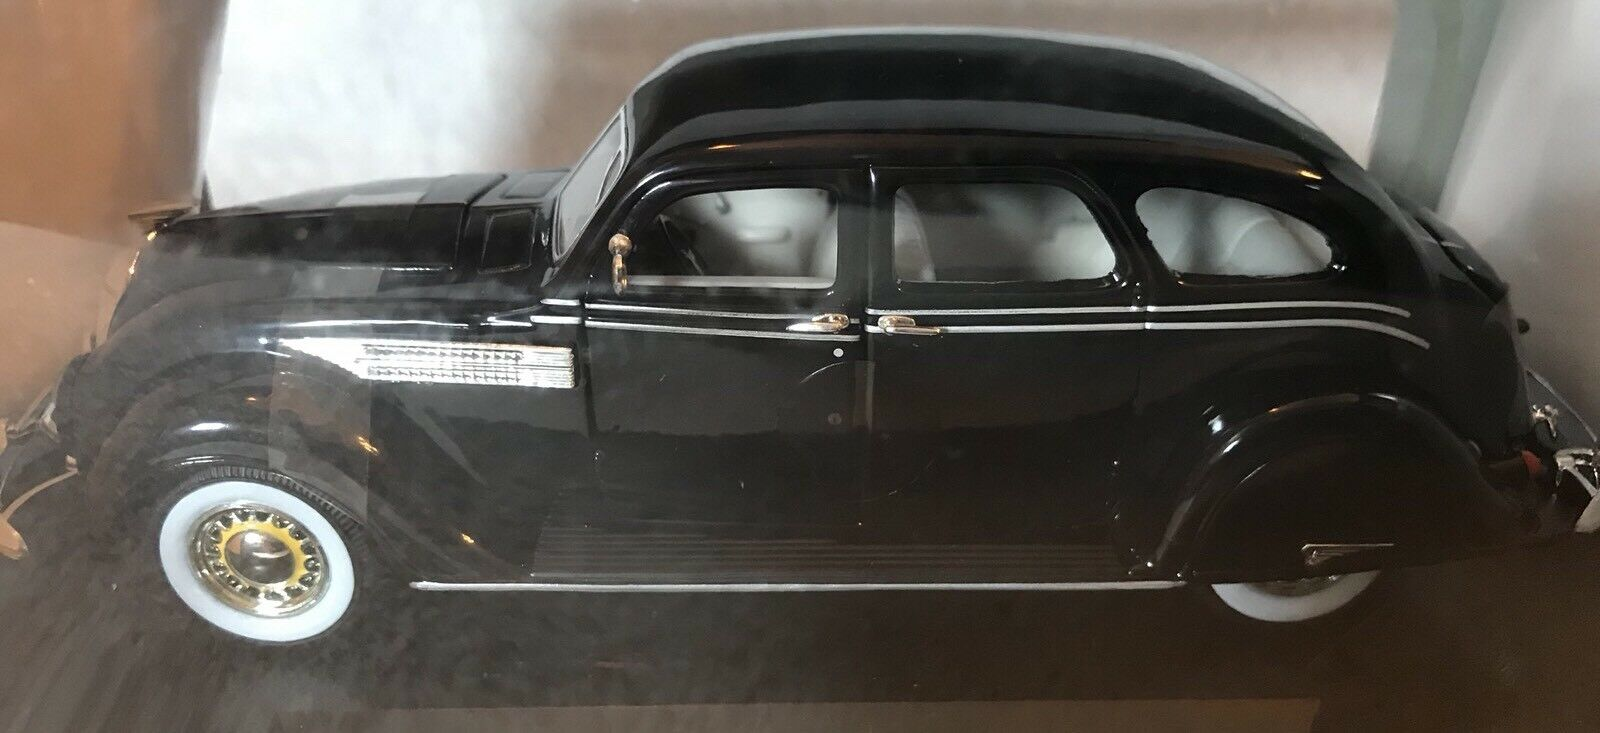 Signature Models 1936 Chrysler Airflow Die Cast Car 1 32  In Box w  Stand